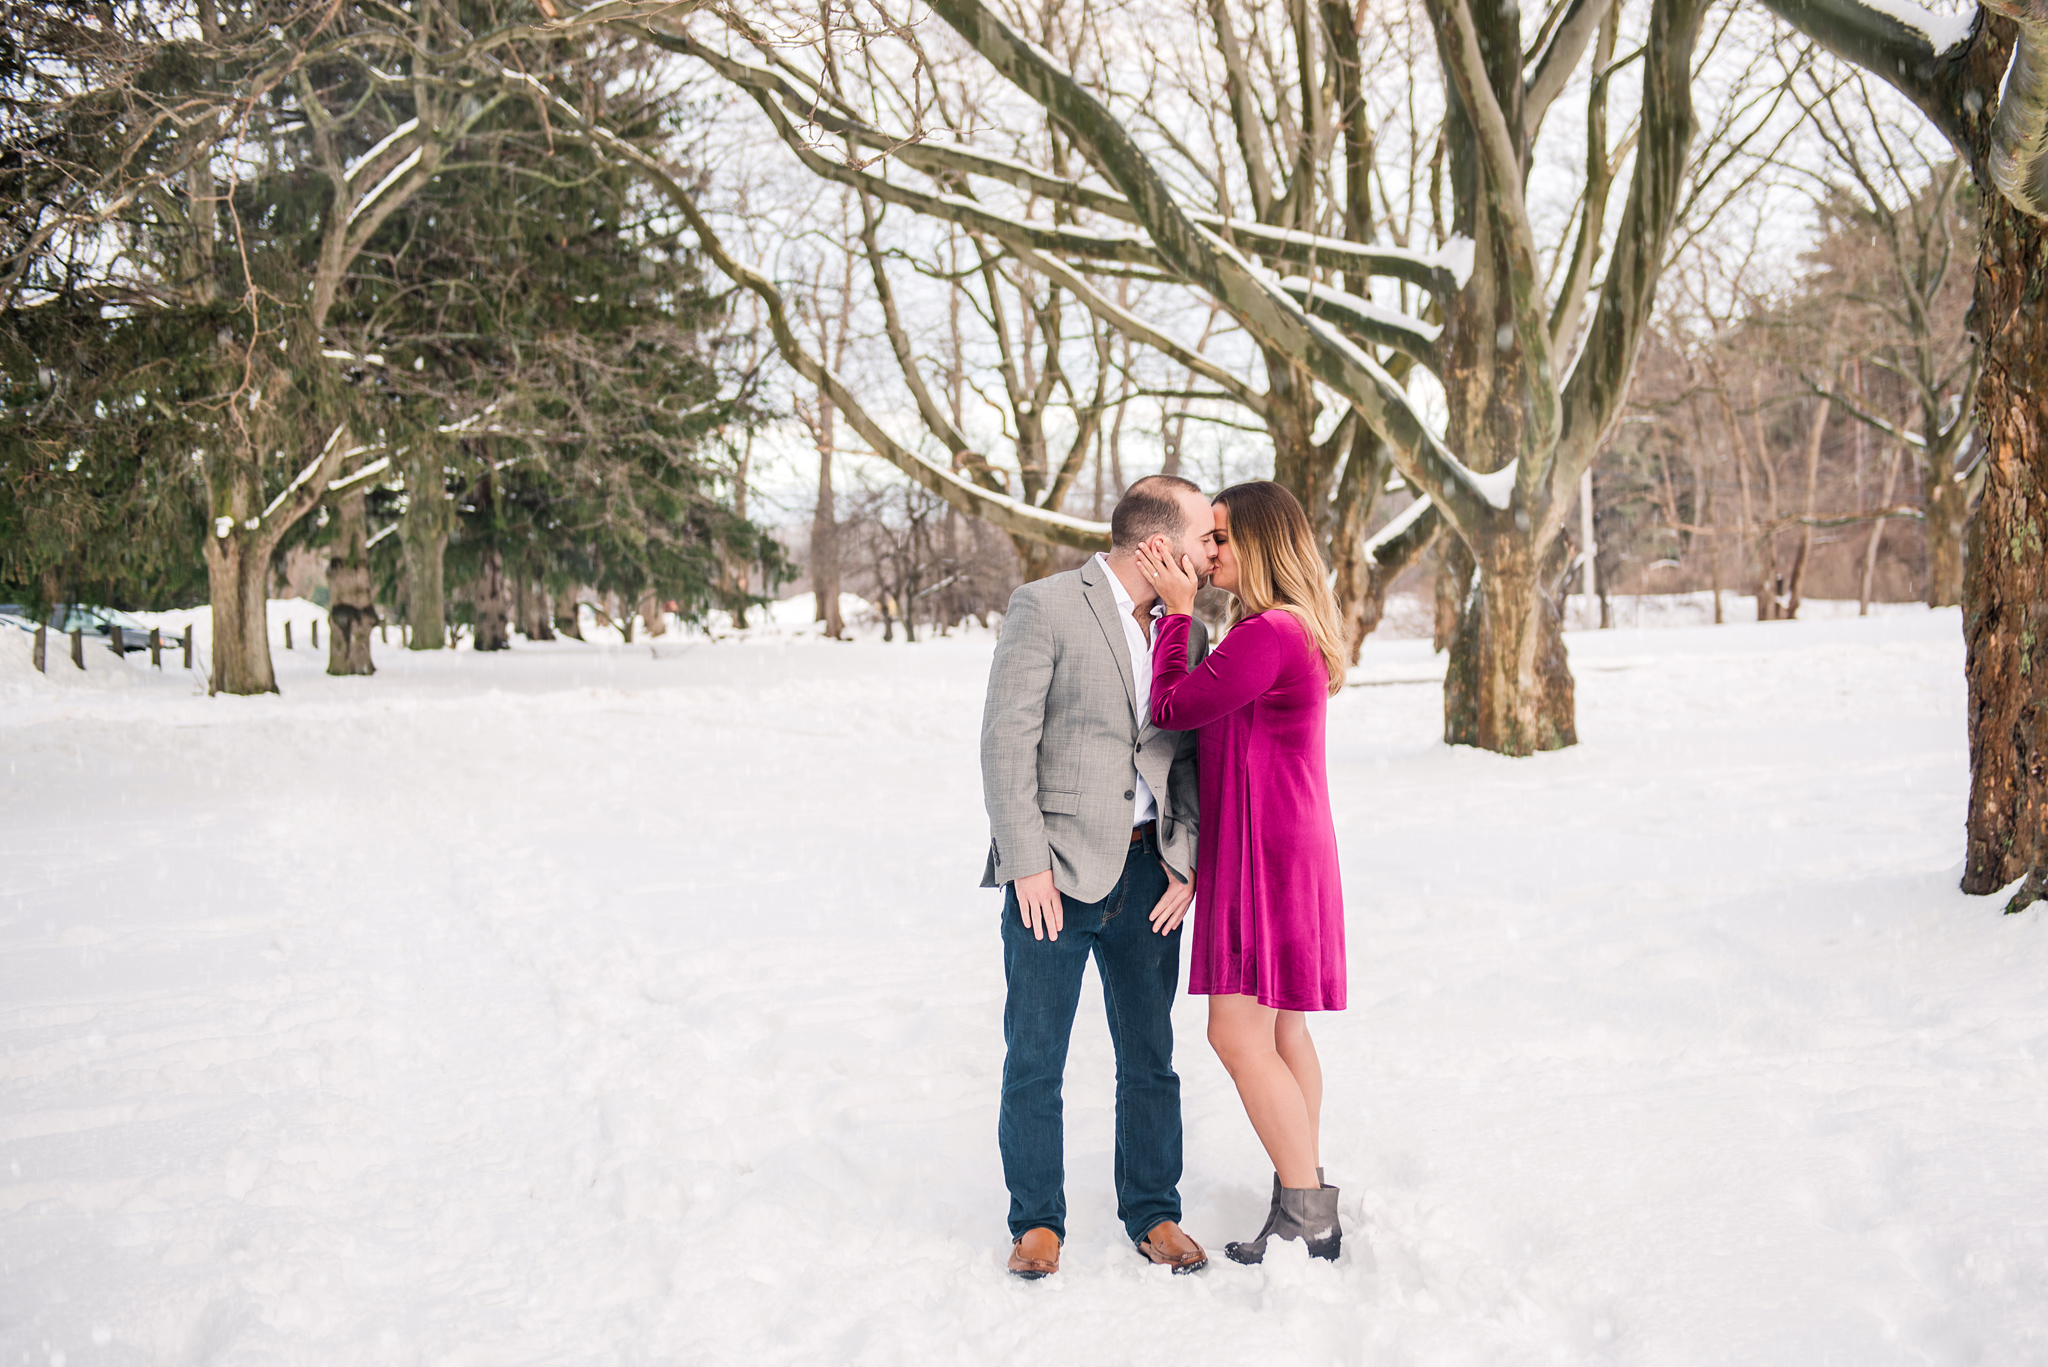 Webster_Park_Engagement_Session_Rochester_NY_photographer_DSC_6347.jpg